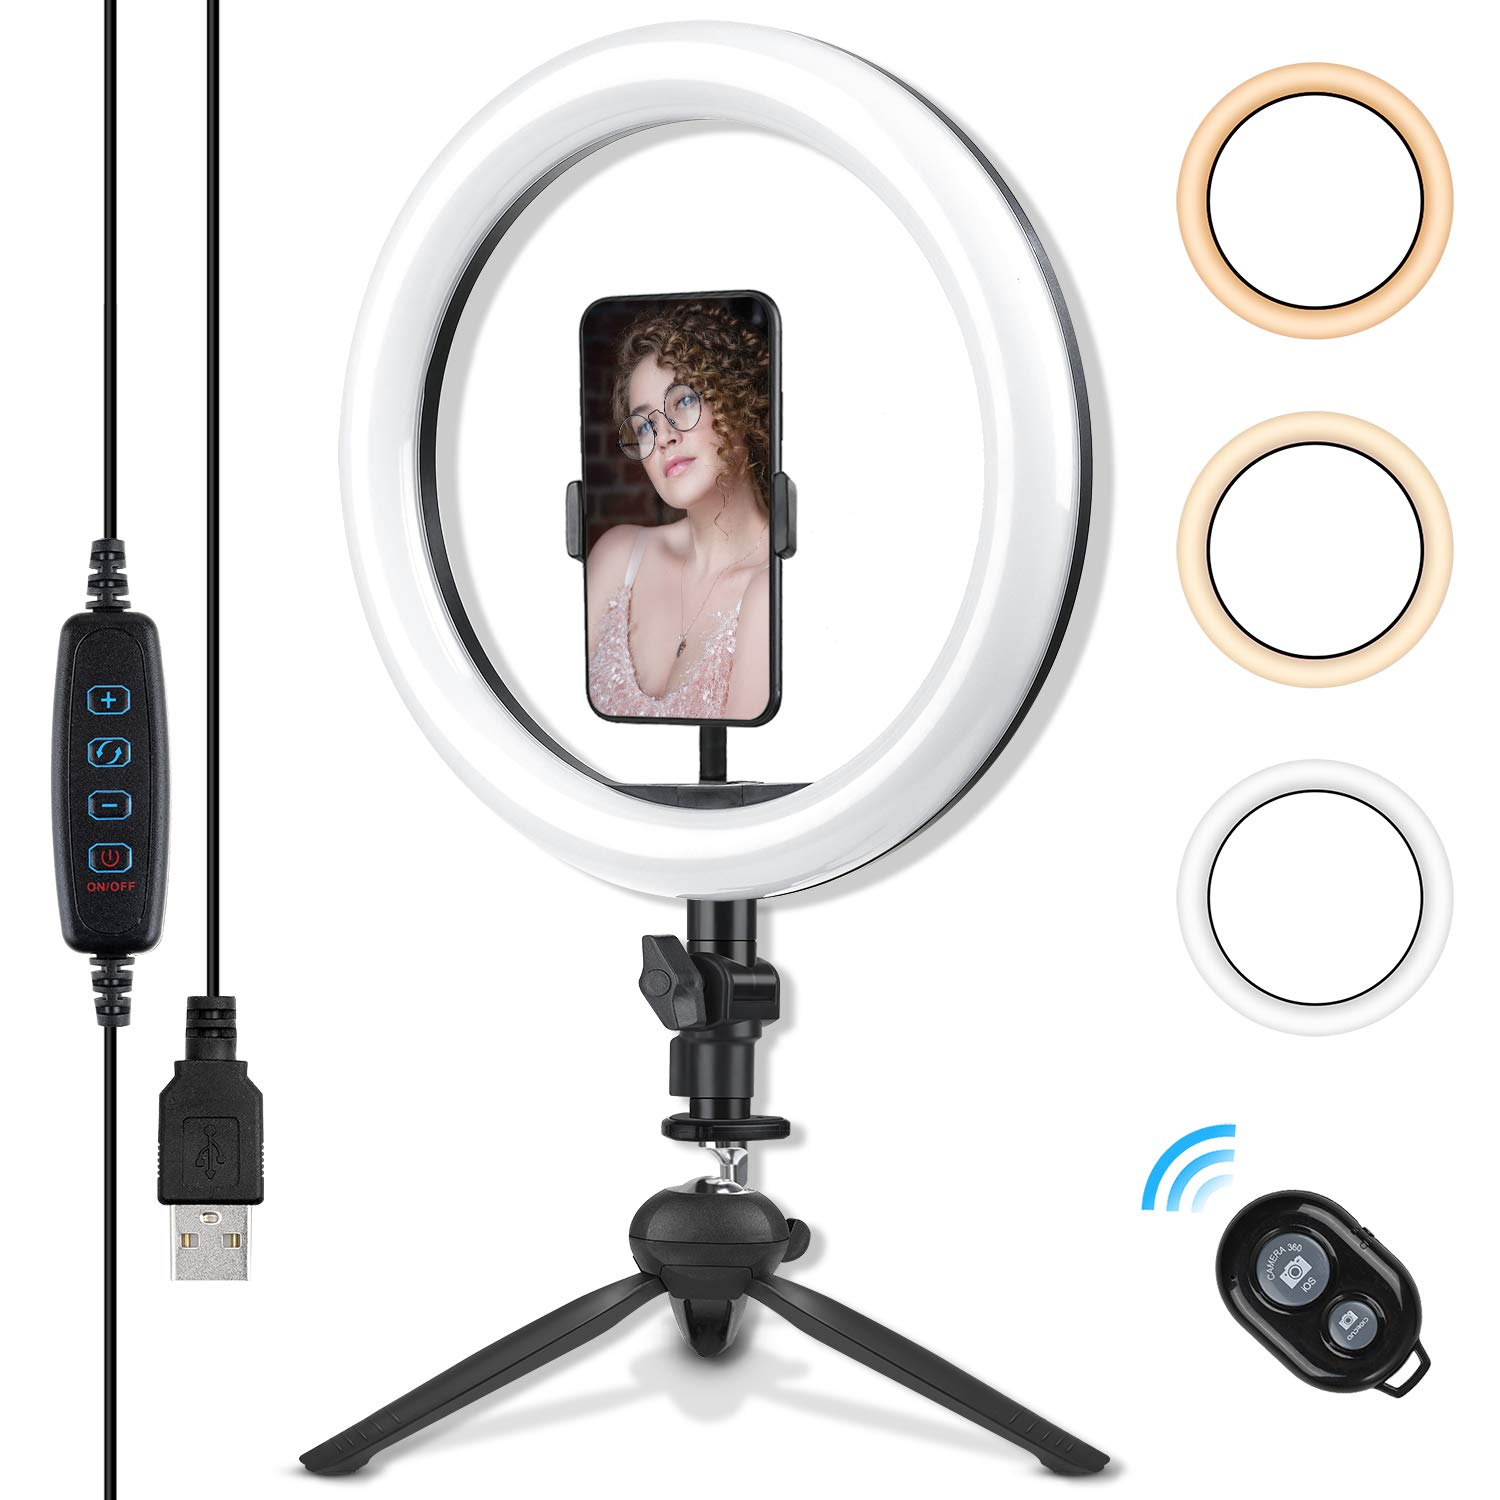 10.2 Inch Ring Light with Stand - Rovtop LED Camera Selfie Light Ring with iPhone Tripod and Phone Holder for Video Photography Makeup Live Streaming by Rovtop